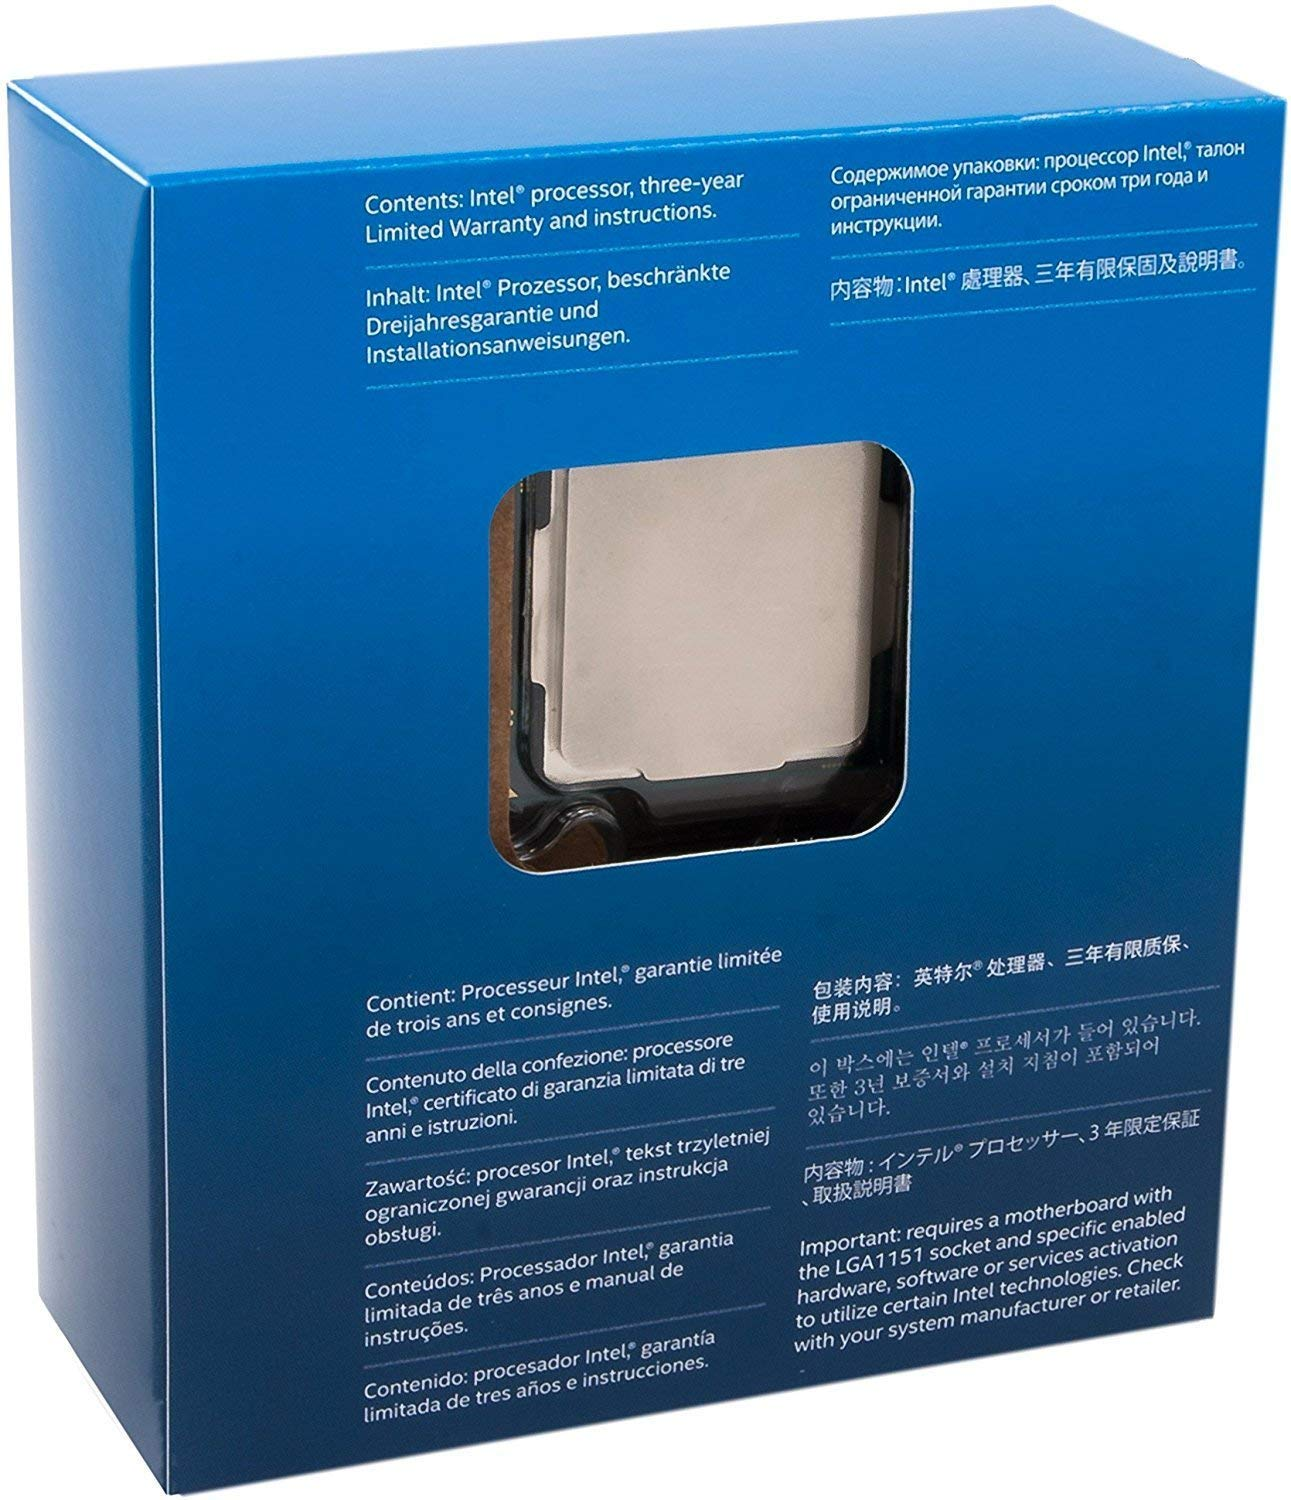 Intel-7th-Gen-Intel-Core-Desktop-Processor-i7-7700K-BX80677I77700K